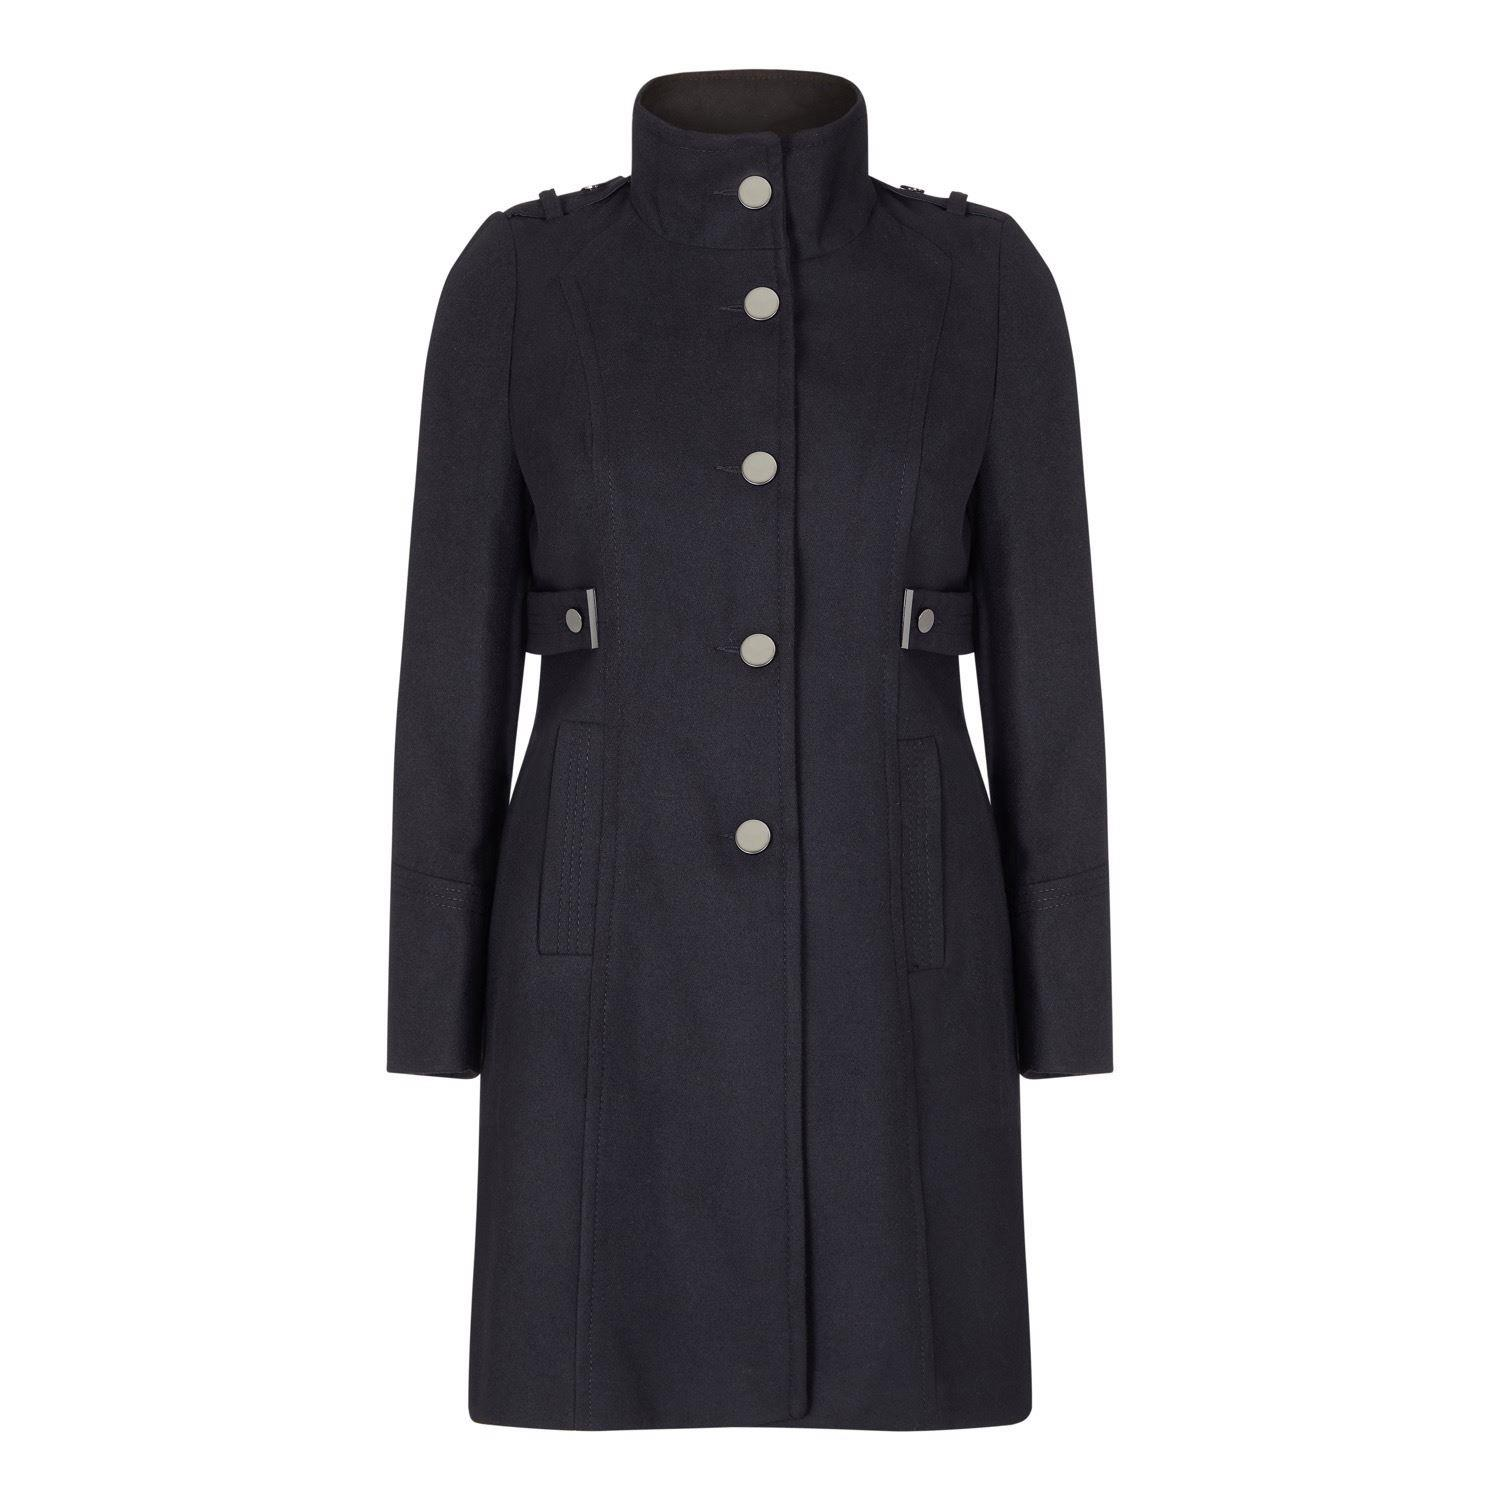 Anastasia -Women's  Stand Collar Single Breasted Coat Withh Silver Buttons and 2 zip Pockets